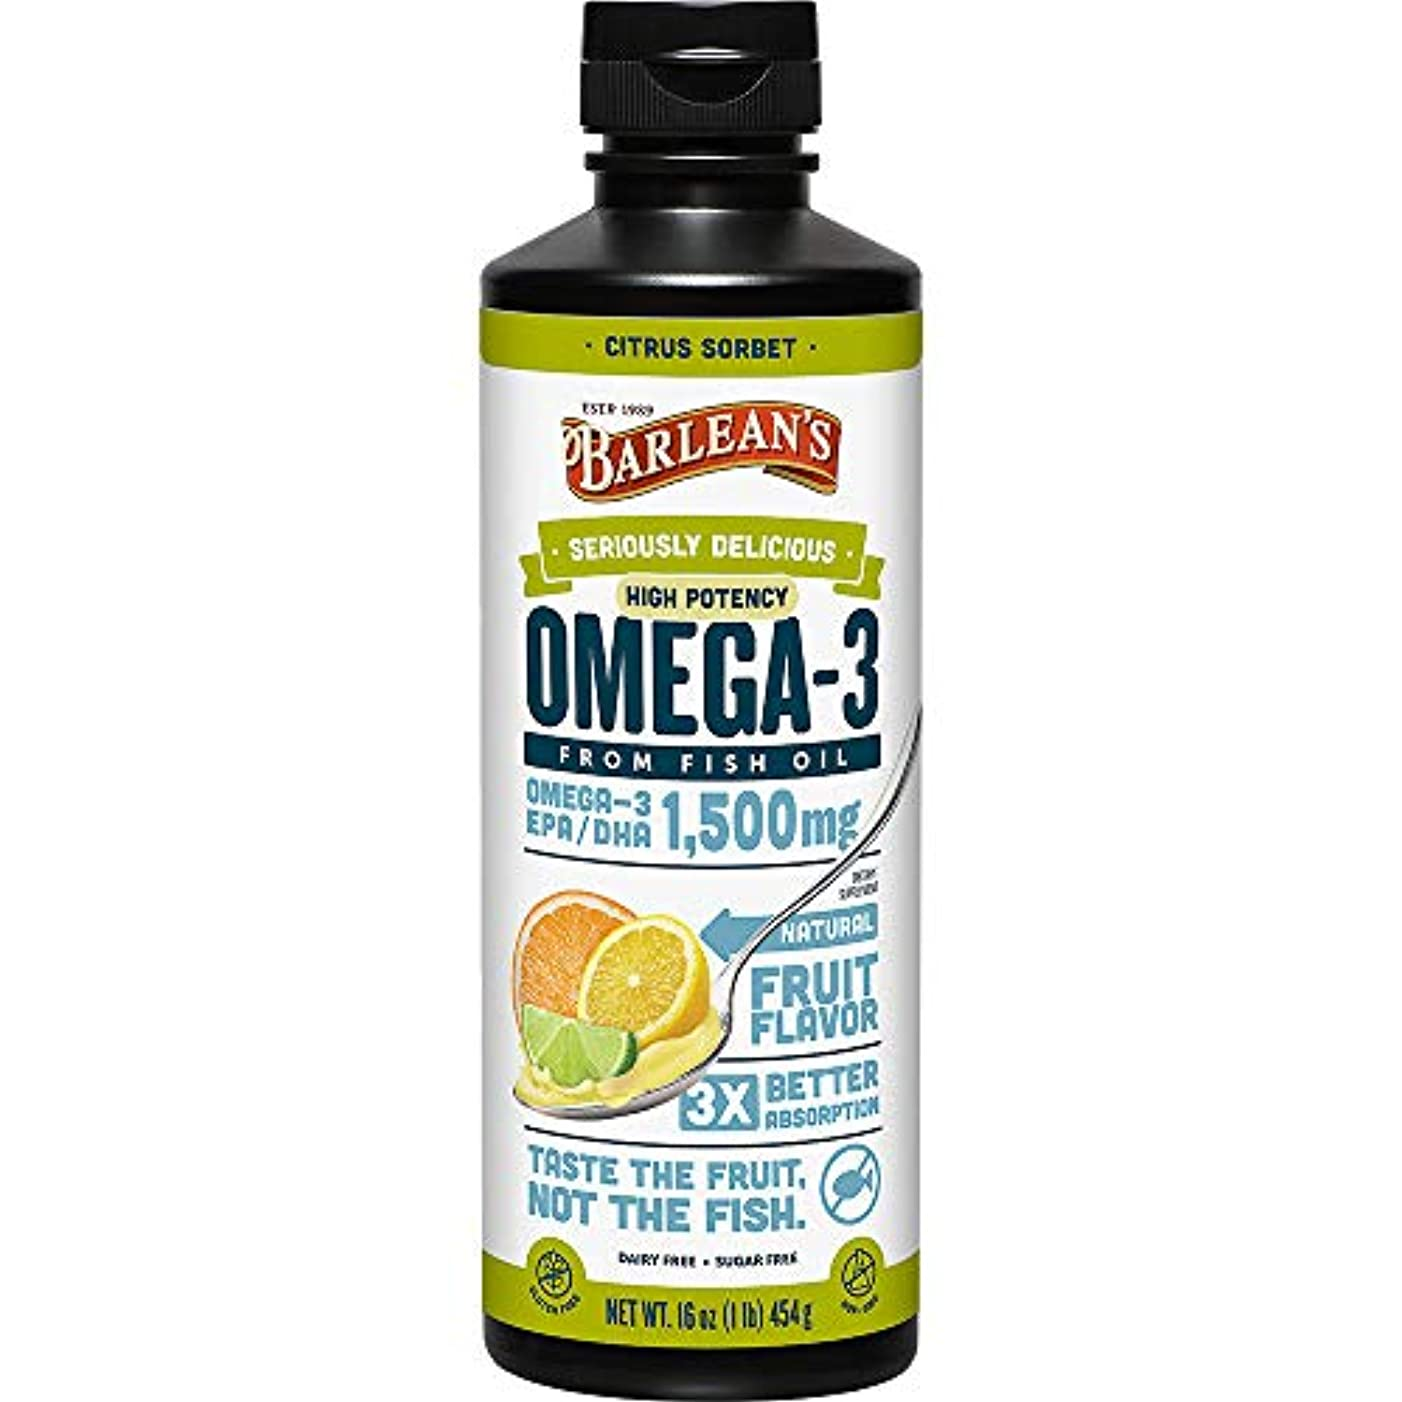 Omega Swirl, Ultra High Potency Fish Oil, Citrus Sorbet - Barlean's - UK Seller by Barlean's